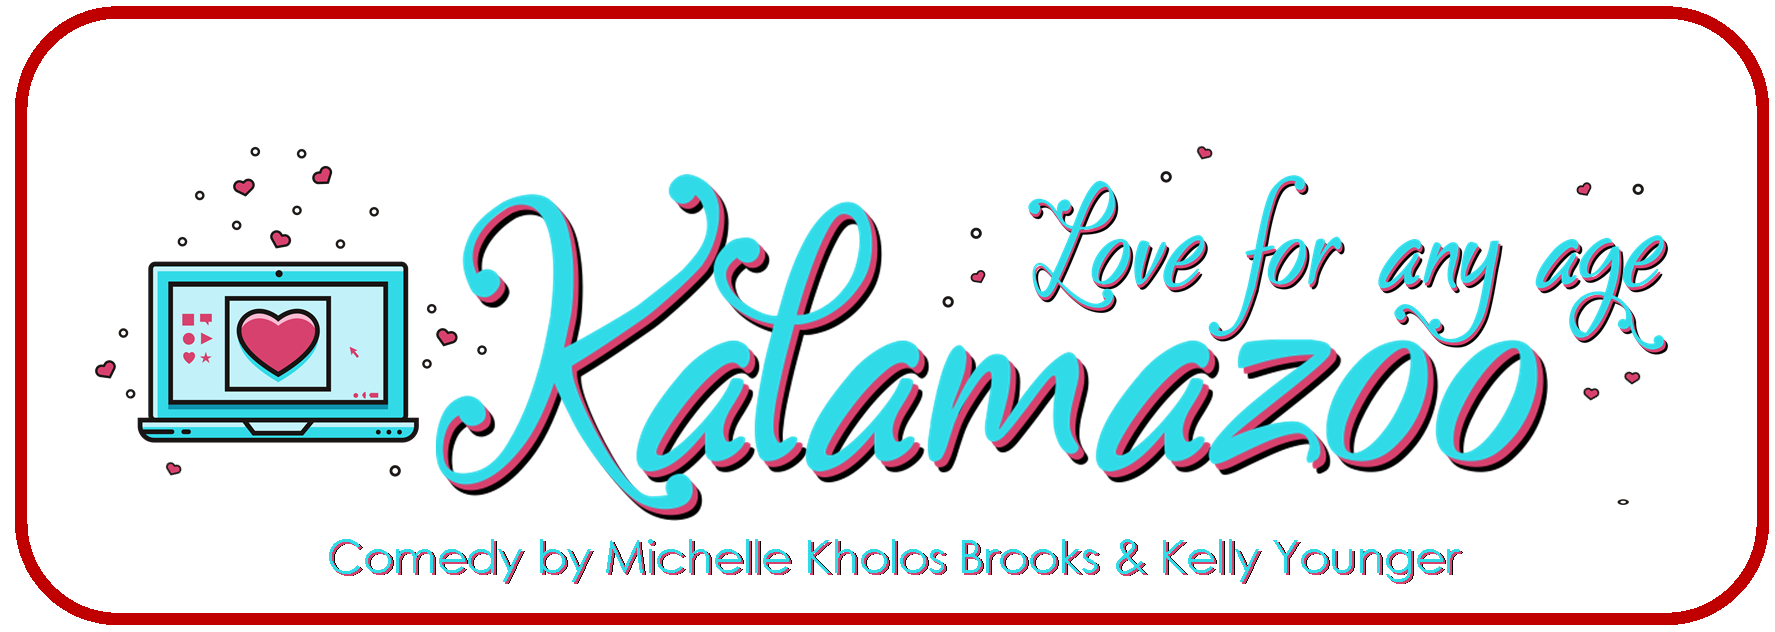 Promotional graphic for the production of Kalamazoo September 11 - 27, 2019